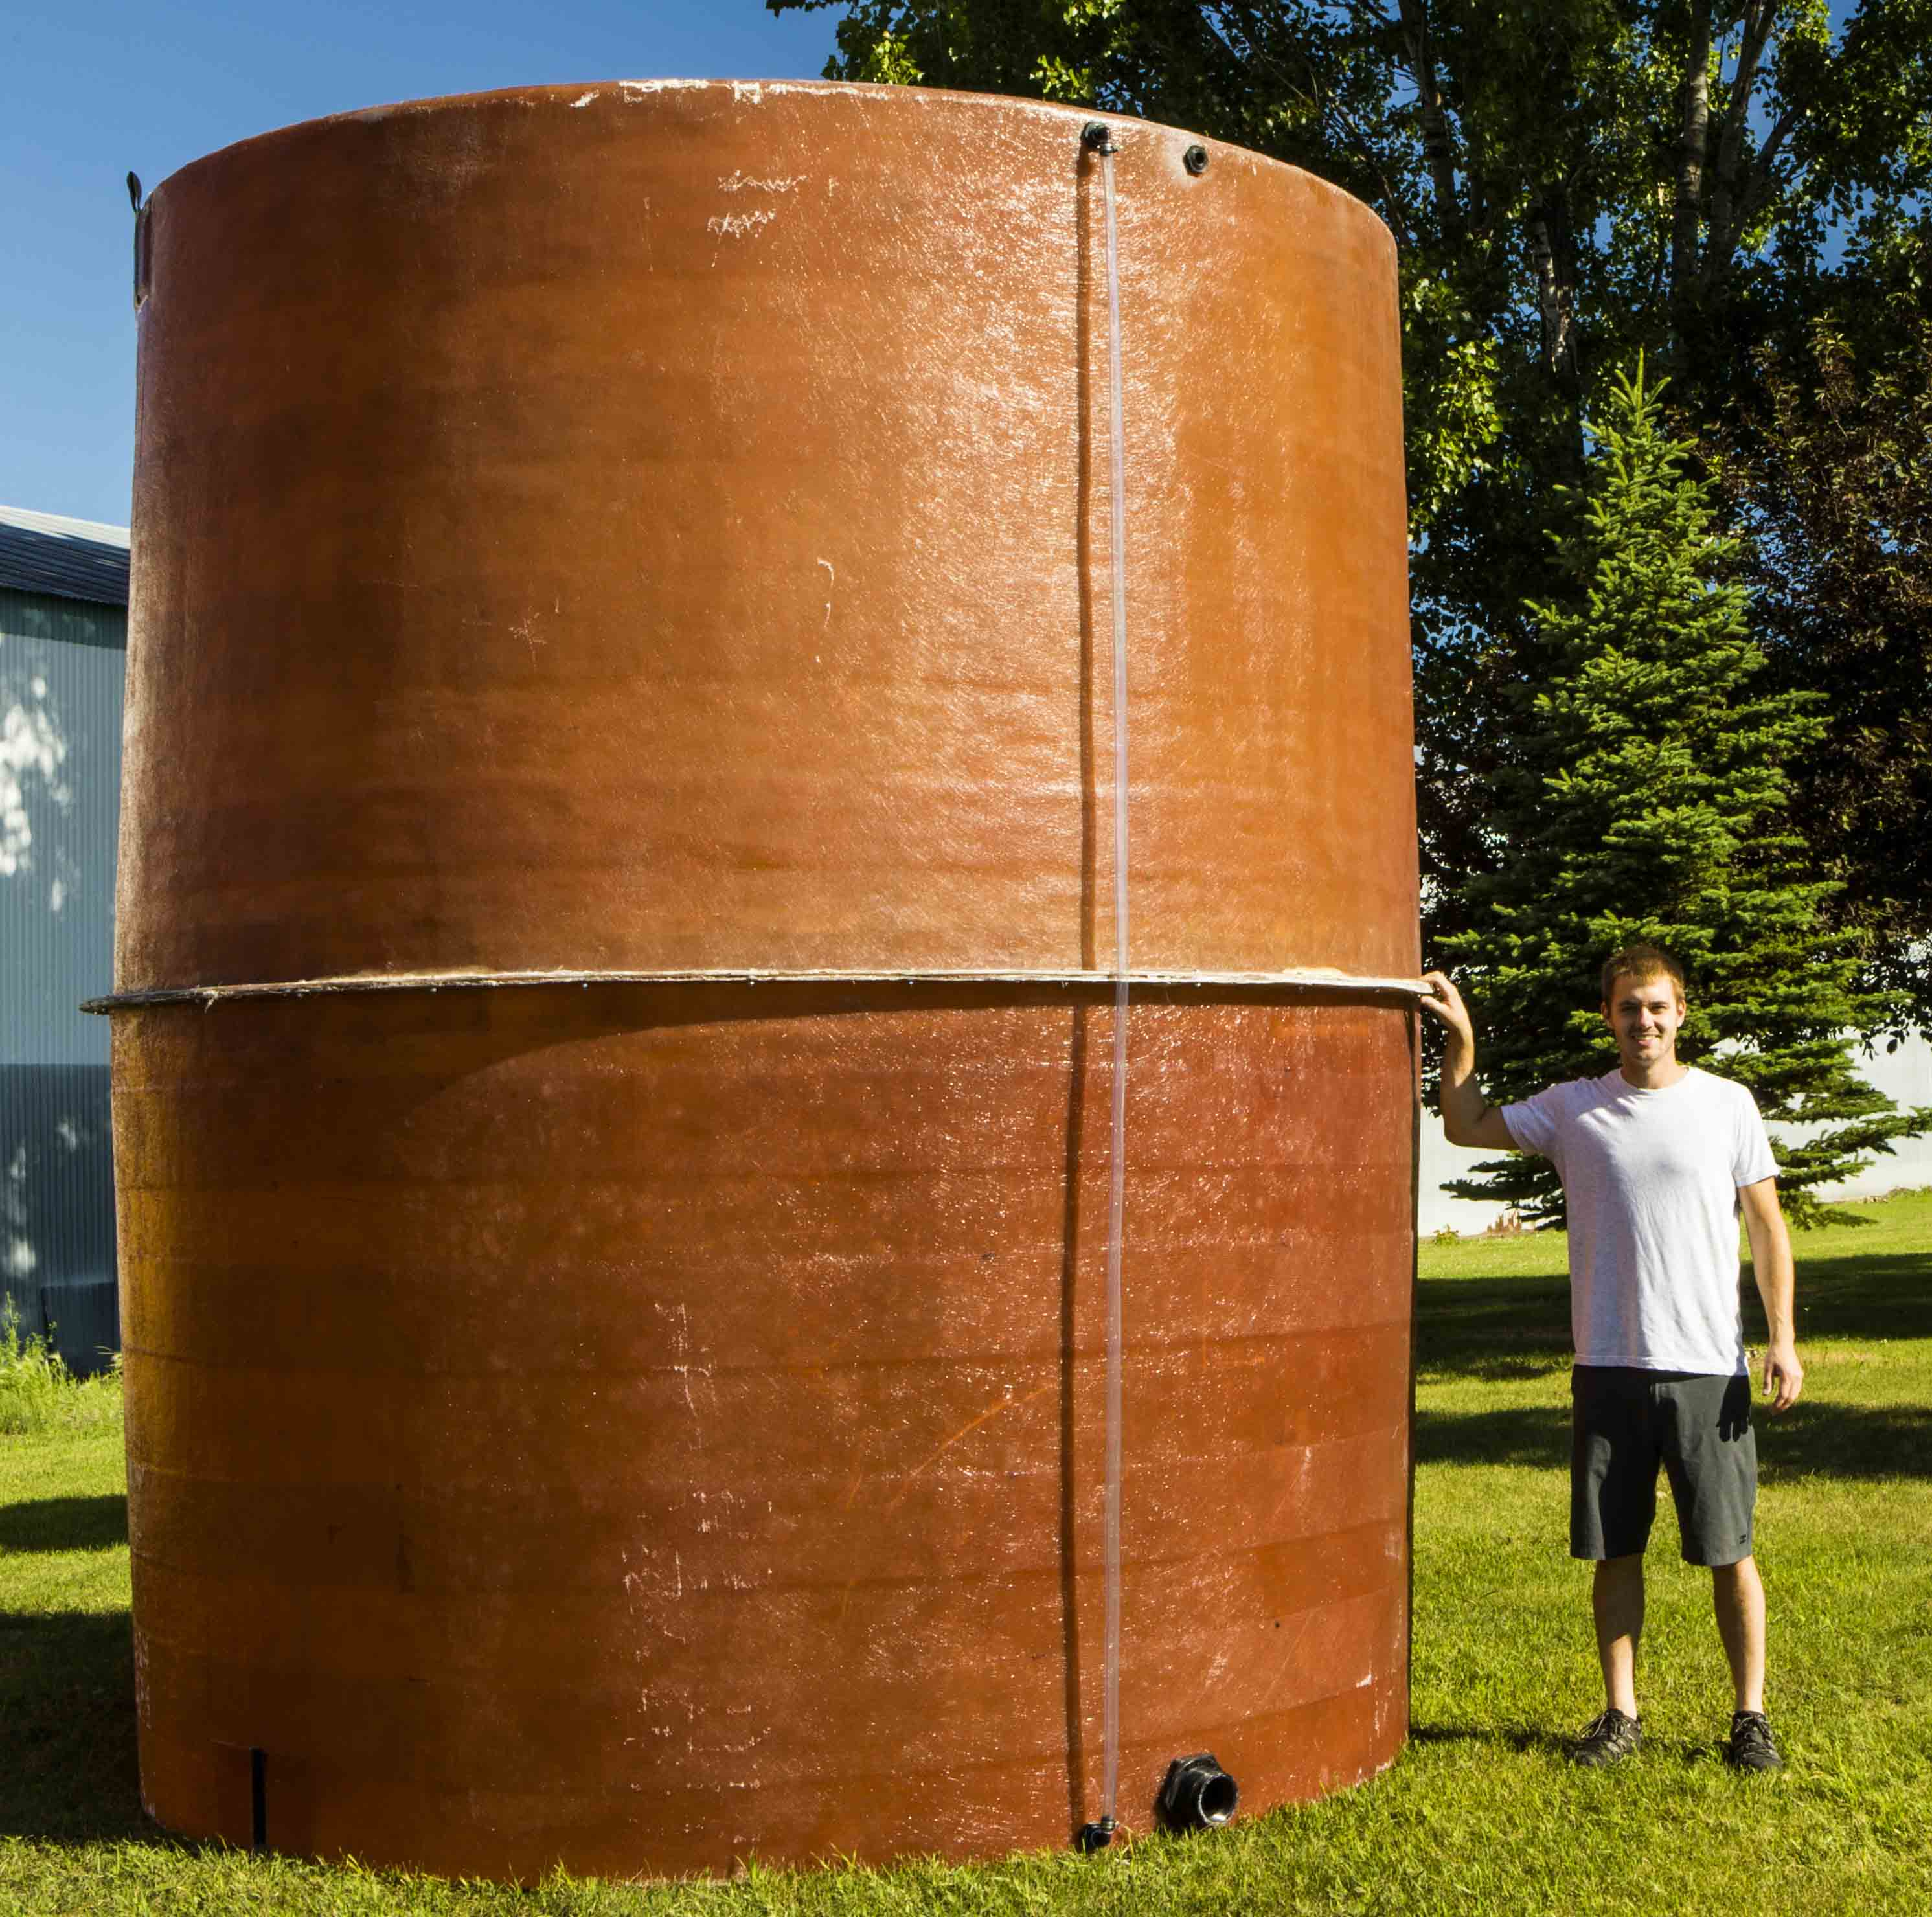 6000-gallon-vertical-tank-website.jpg